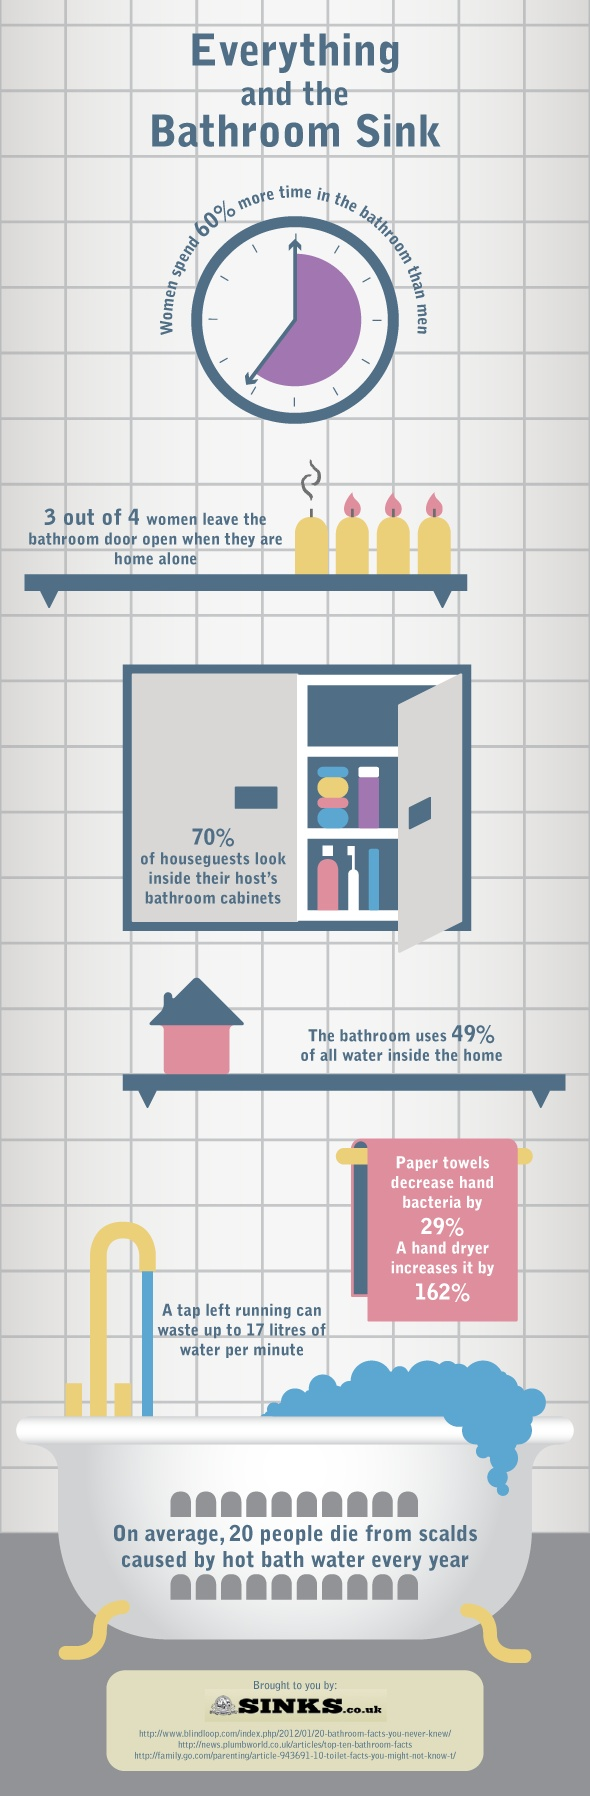 An infographic on bathroom facts including how much water is wasted by leaving a tap on and how many people die each year from bath water